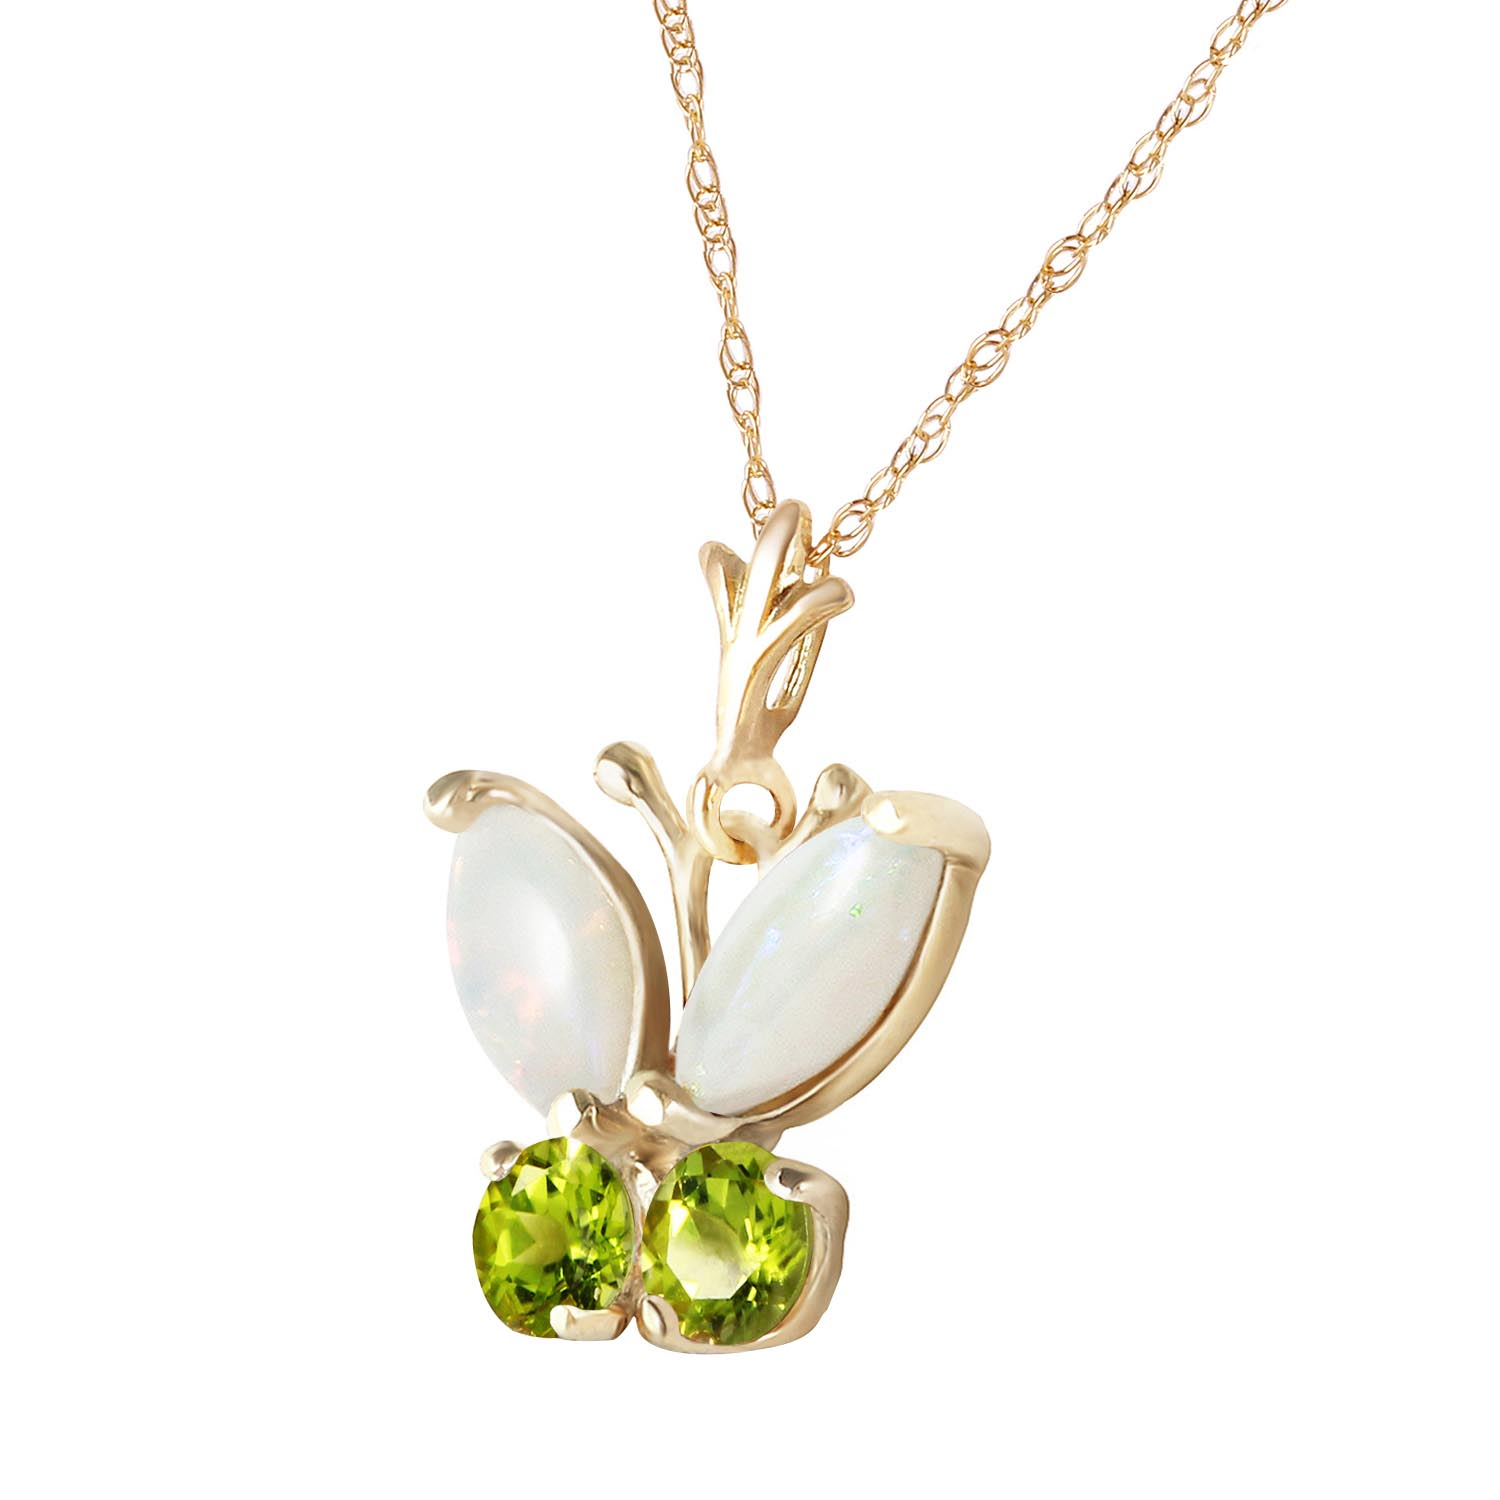 Opal and Peridot Butterfly Pendant Necklace 0.7ctw in 14K Gold